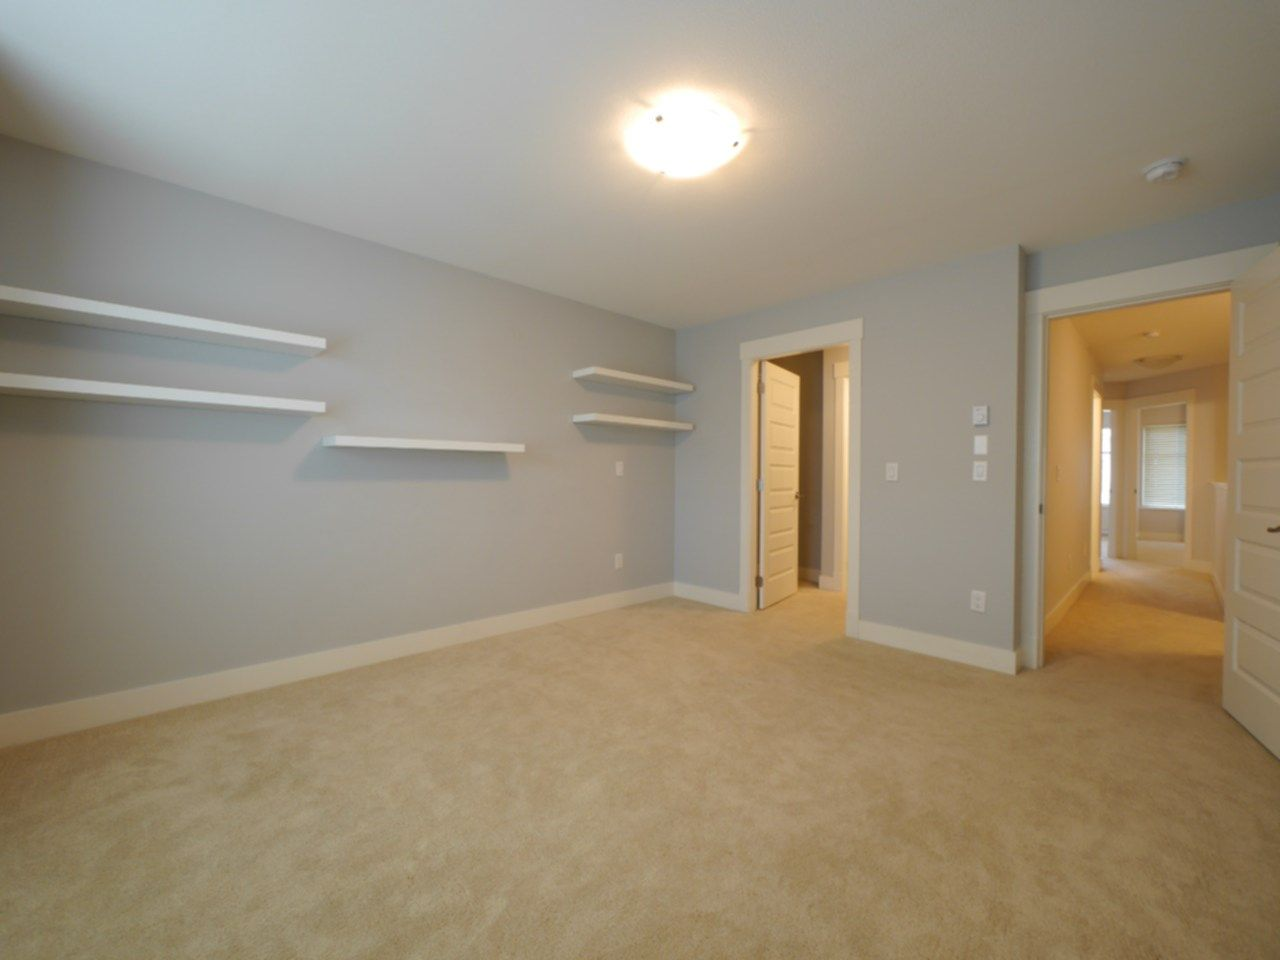 """Photo 13: Photos: 36 19525 73 Avenue in Surrey: Clayton Townhouse for sale in """"Uptown Clayton"""" (Cloverdale)  : MLS®# R2069814"""